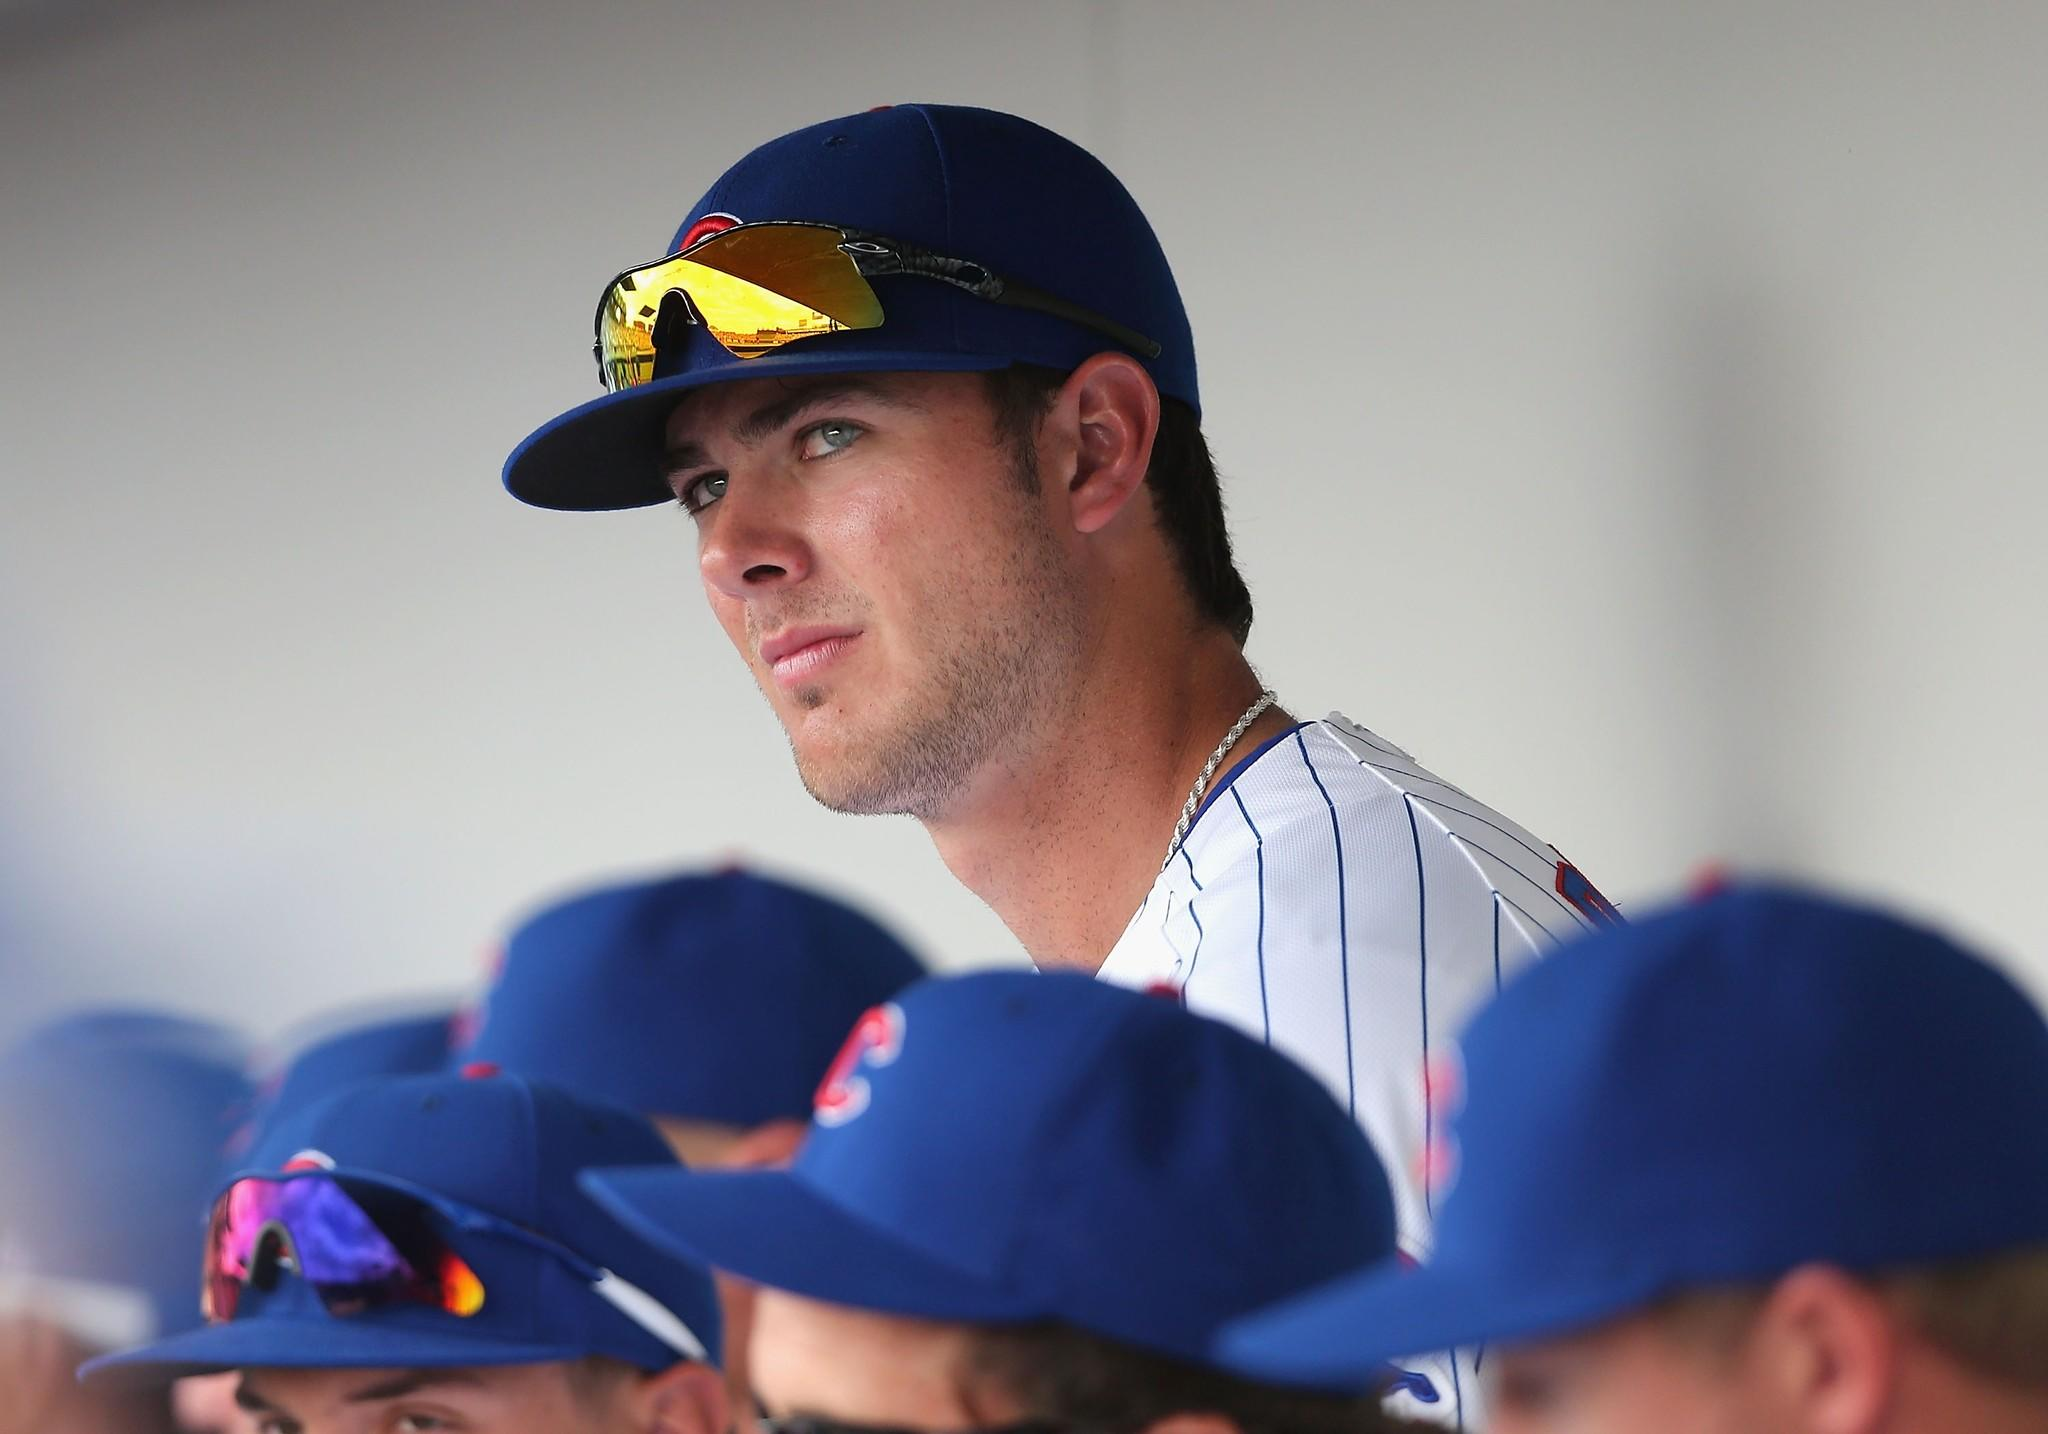 Kris Bryant of the Cubs in the dugout during a spring training game.